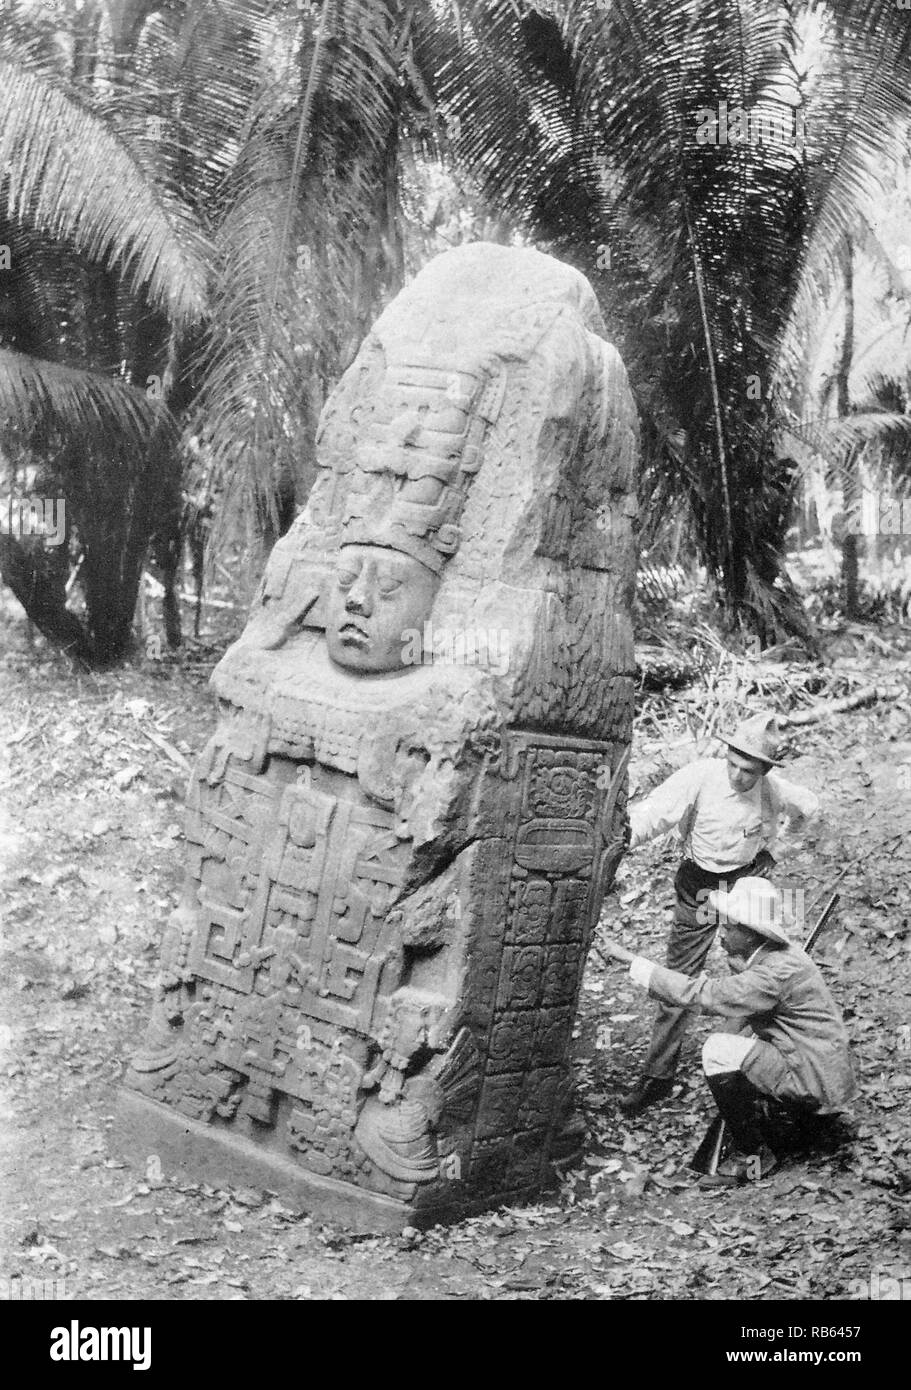 Photograph of a stela in Quirigua. Guatemala. Stela for the Queen of Quirigua. On the sides are seen hieroglyphics similar to those of the Maya manuscripts. Dated 900 AD (Photograpgh dated 1915). - Stock Image